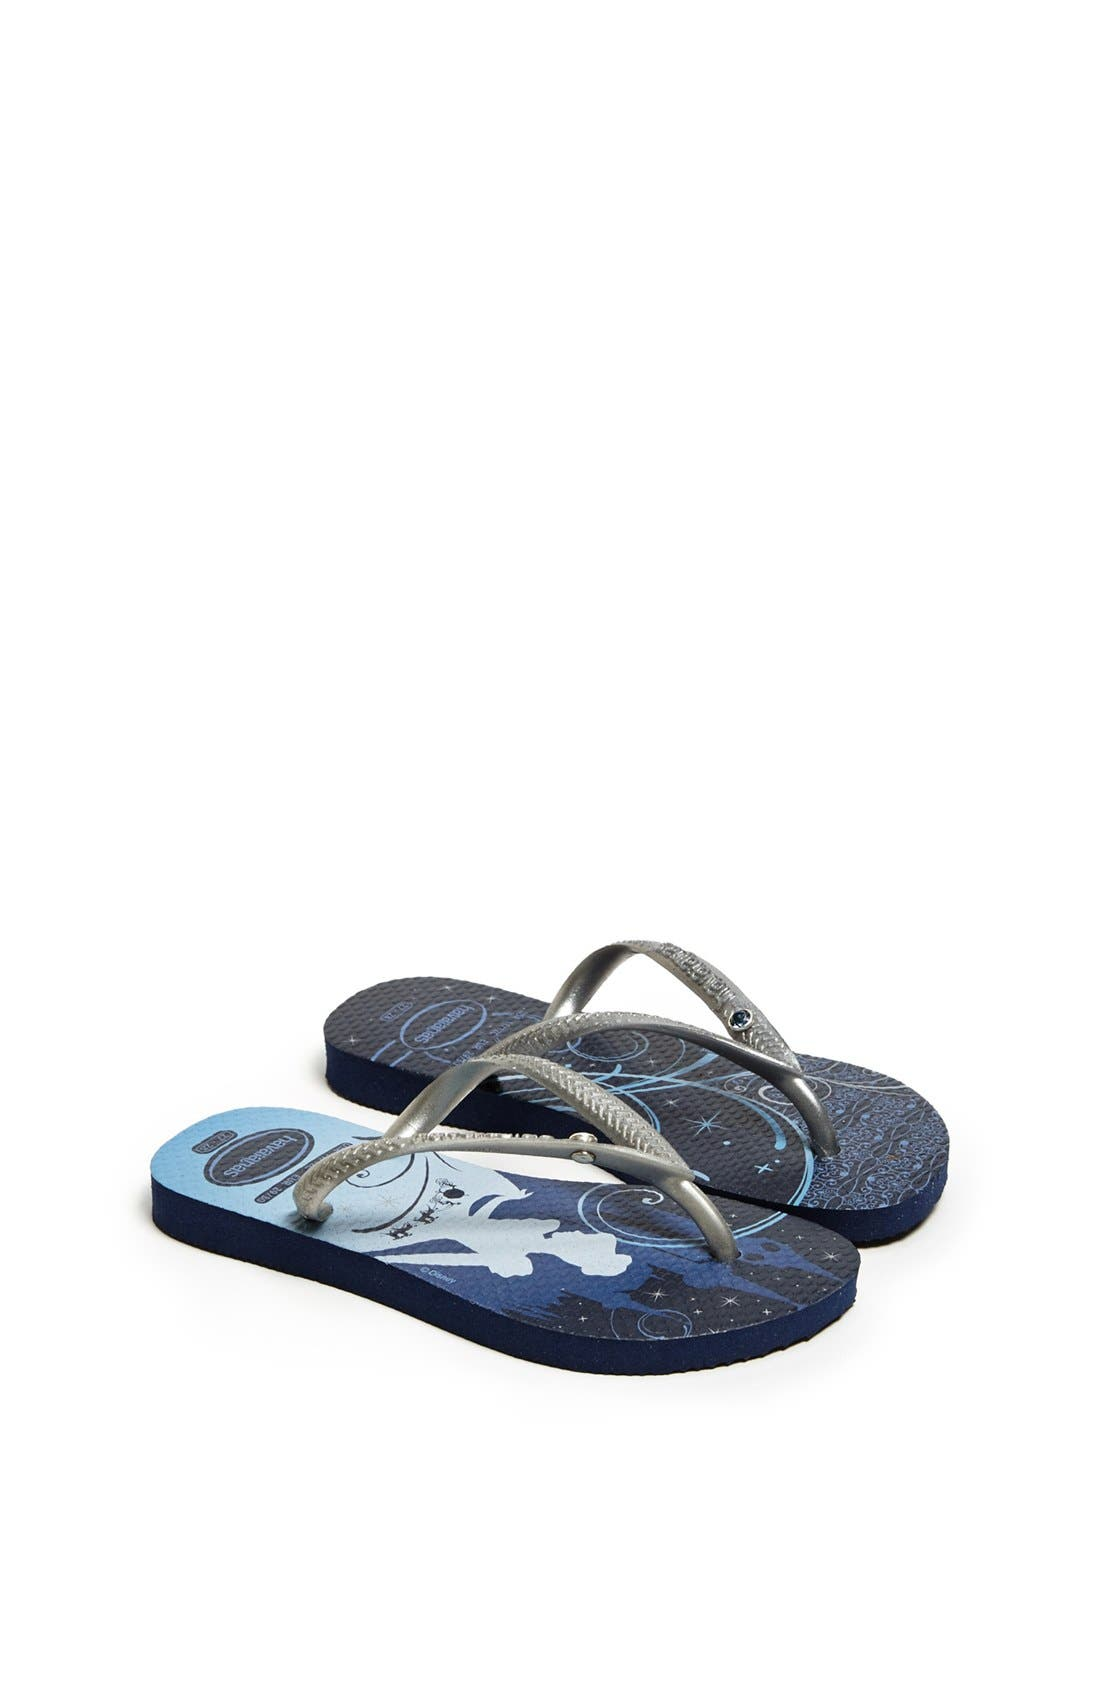 Main Image - Havaianas 'Slim Princess Glam' Flip Flop (Toddler & Little Kid)